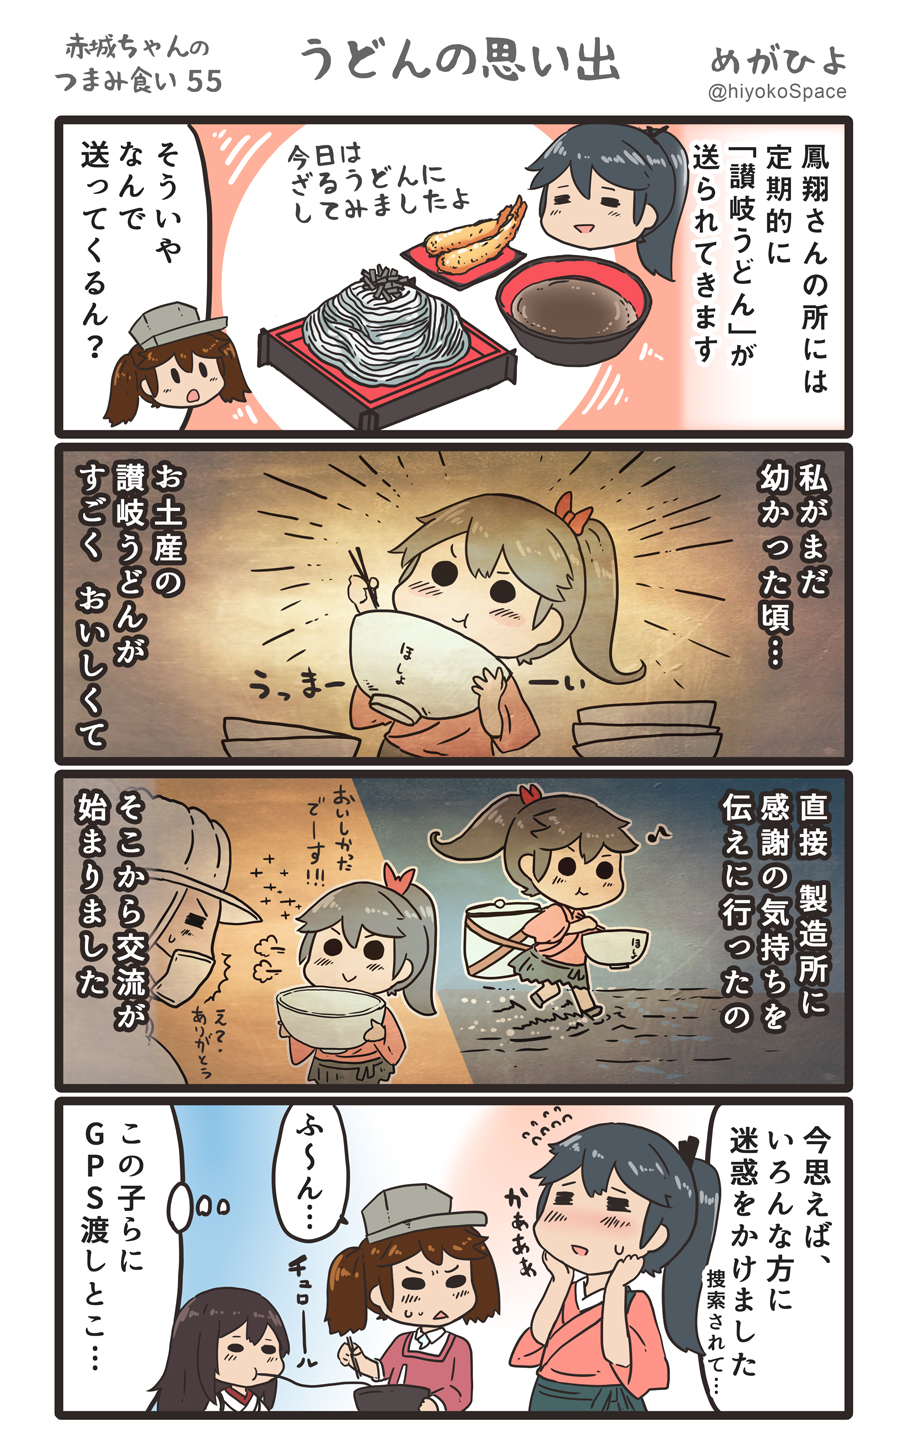 3girls akagi_(kantai_collection) bowl brown_hair chopsticks comic commentary_request eating food hakama_skirt highres hiyoko_(nikuyakidaijinn) houshou_(kantai_collection) japanese_clothes kantai_collection long_hair multiple_girls ponytail ryuujou_(kantai_collection) speech_bubble tasuki thought_bubble translation_request twintails twitter_username visor_cap younger